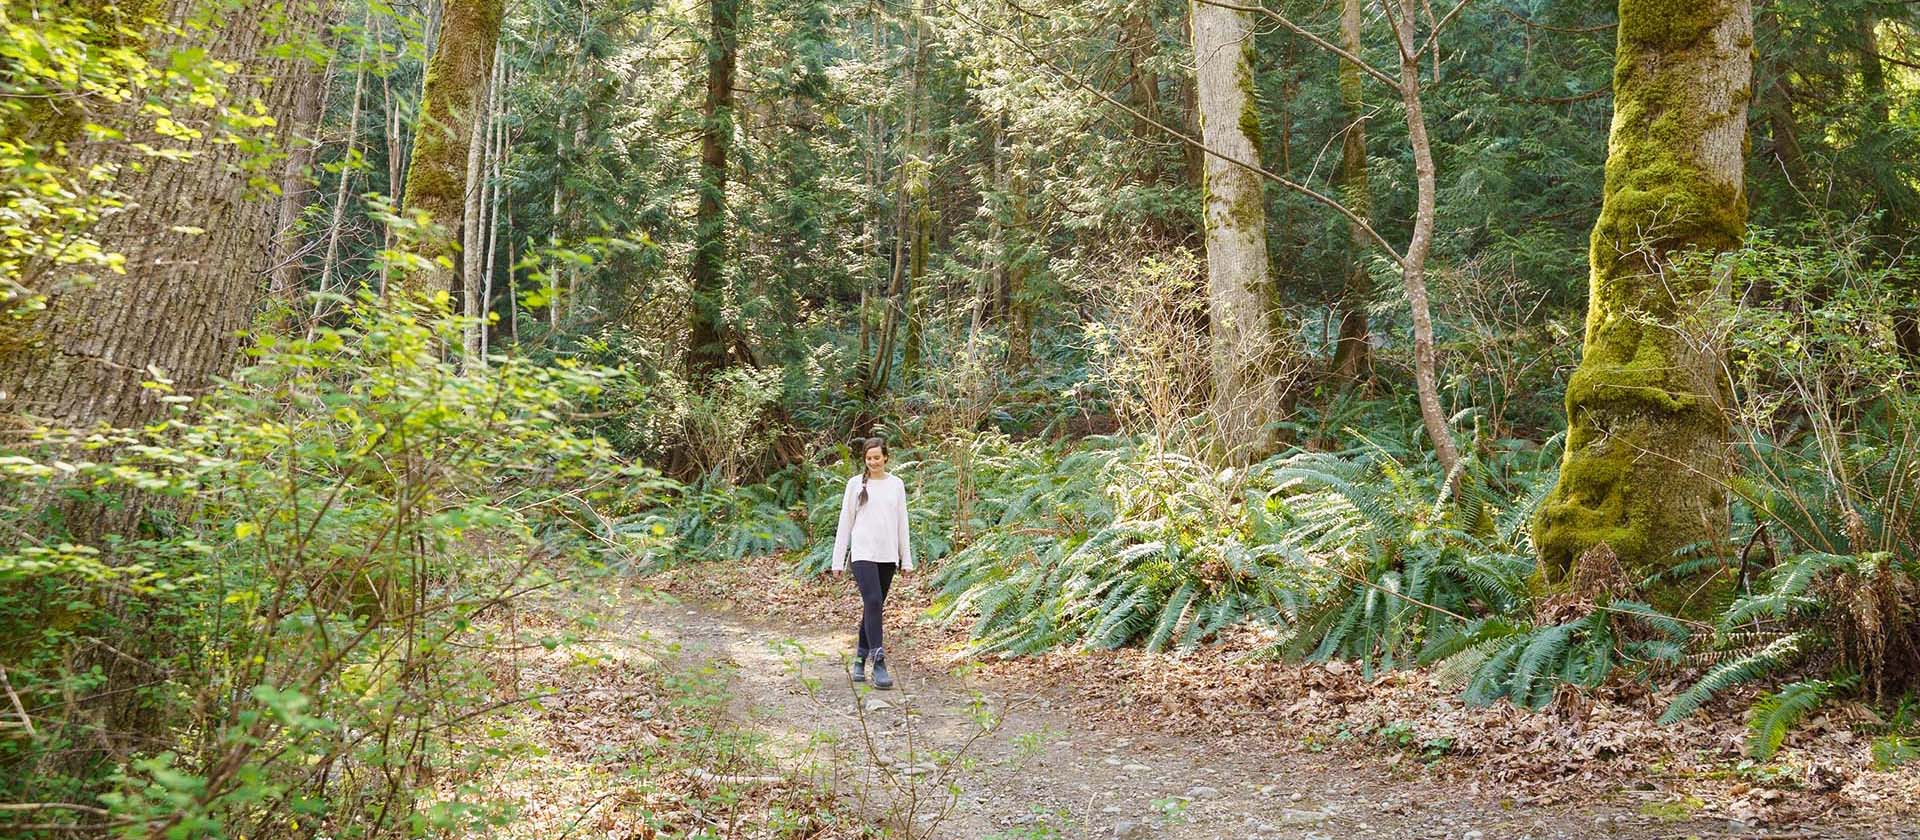 Woman walking along forest path